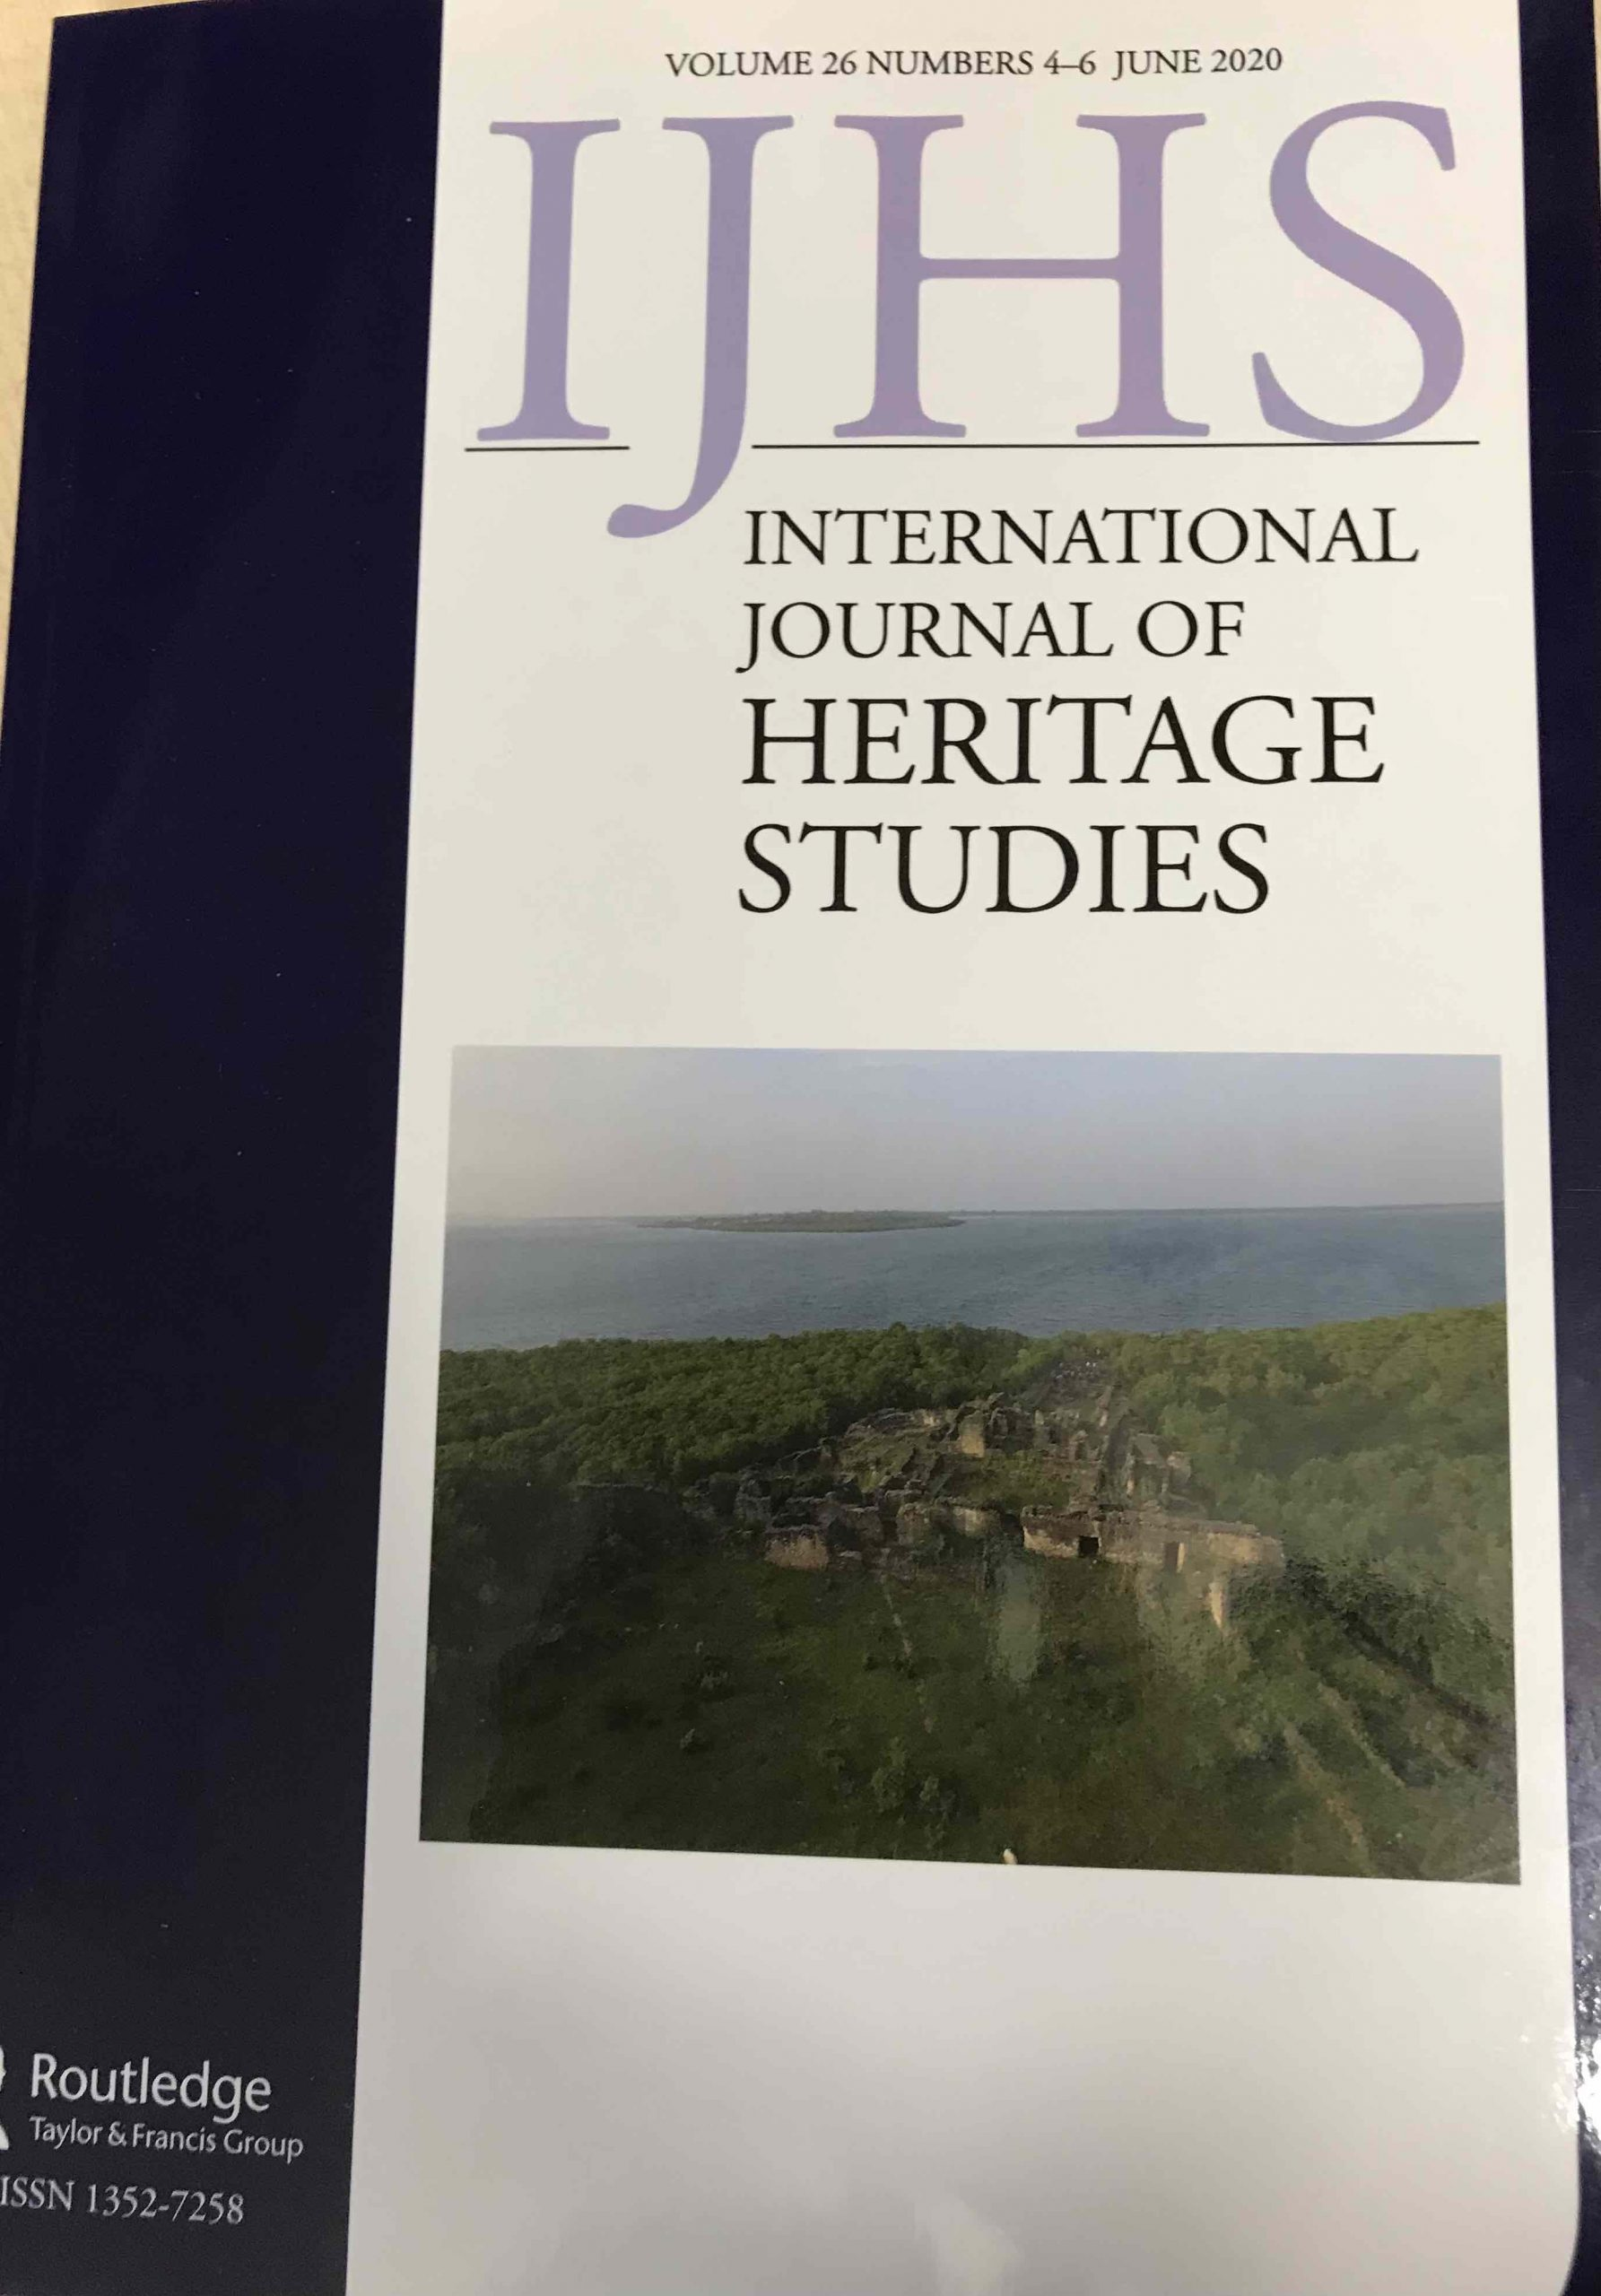 IJHS-cover-scaled